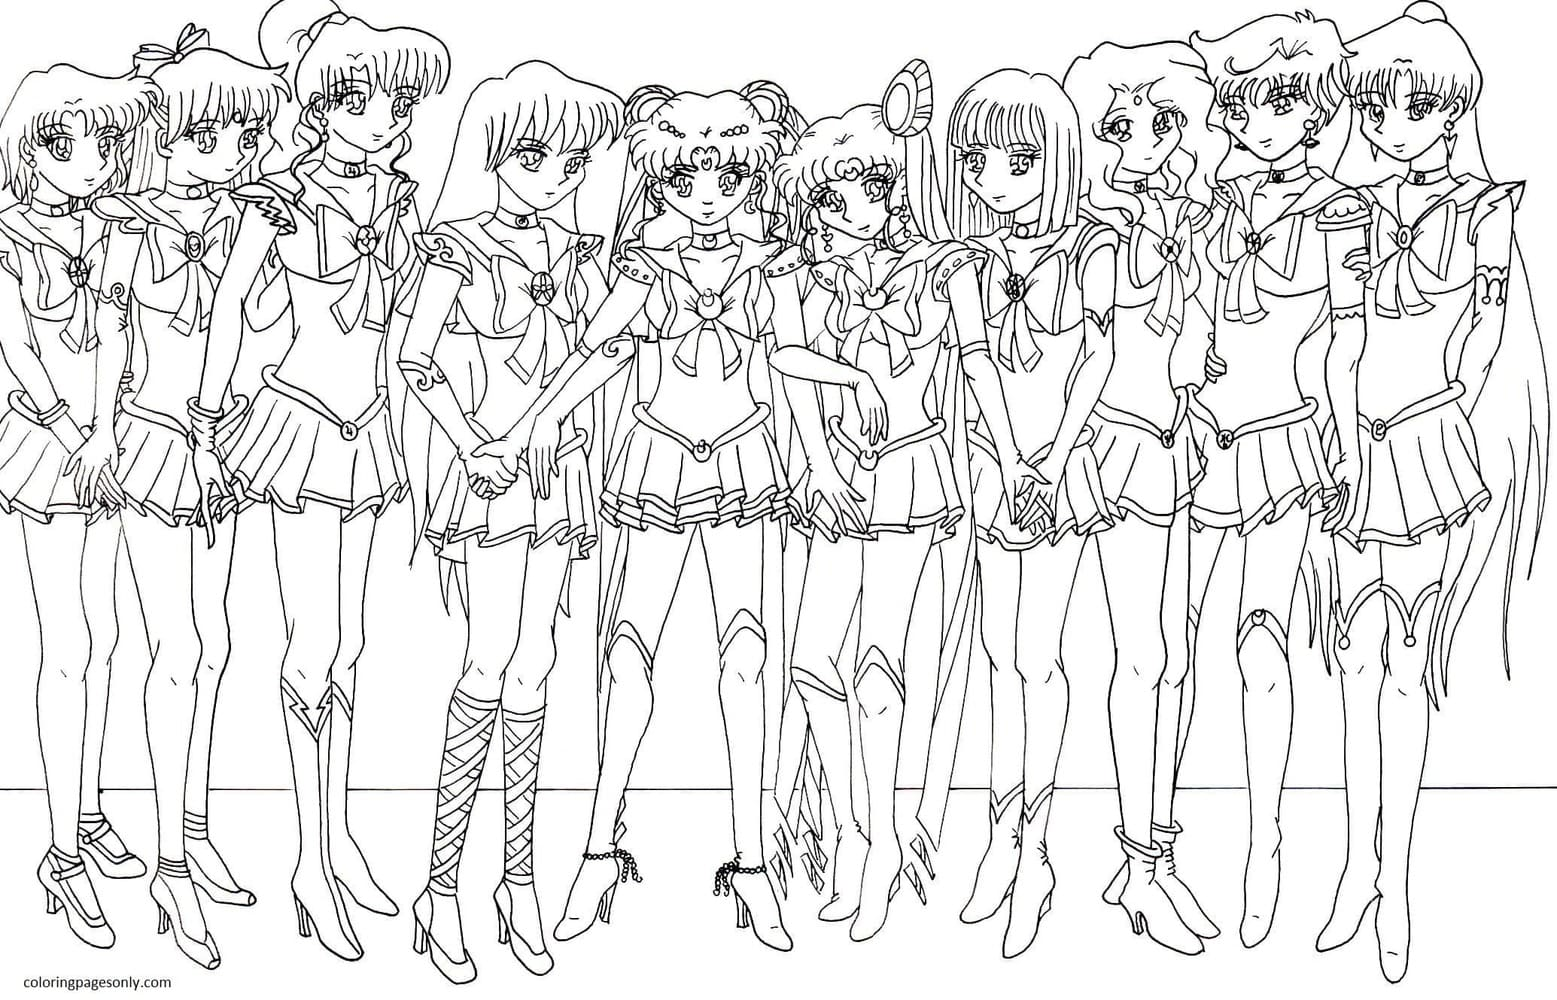 Anime Sailor Moon 2 Coloring Page